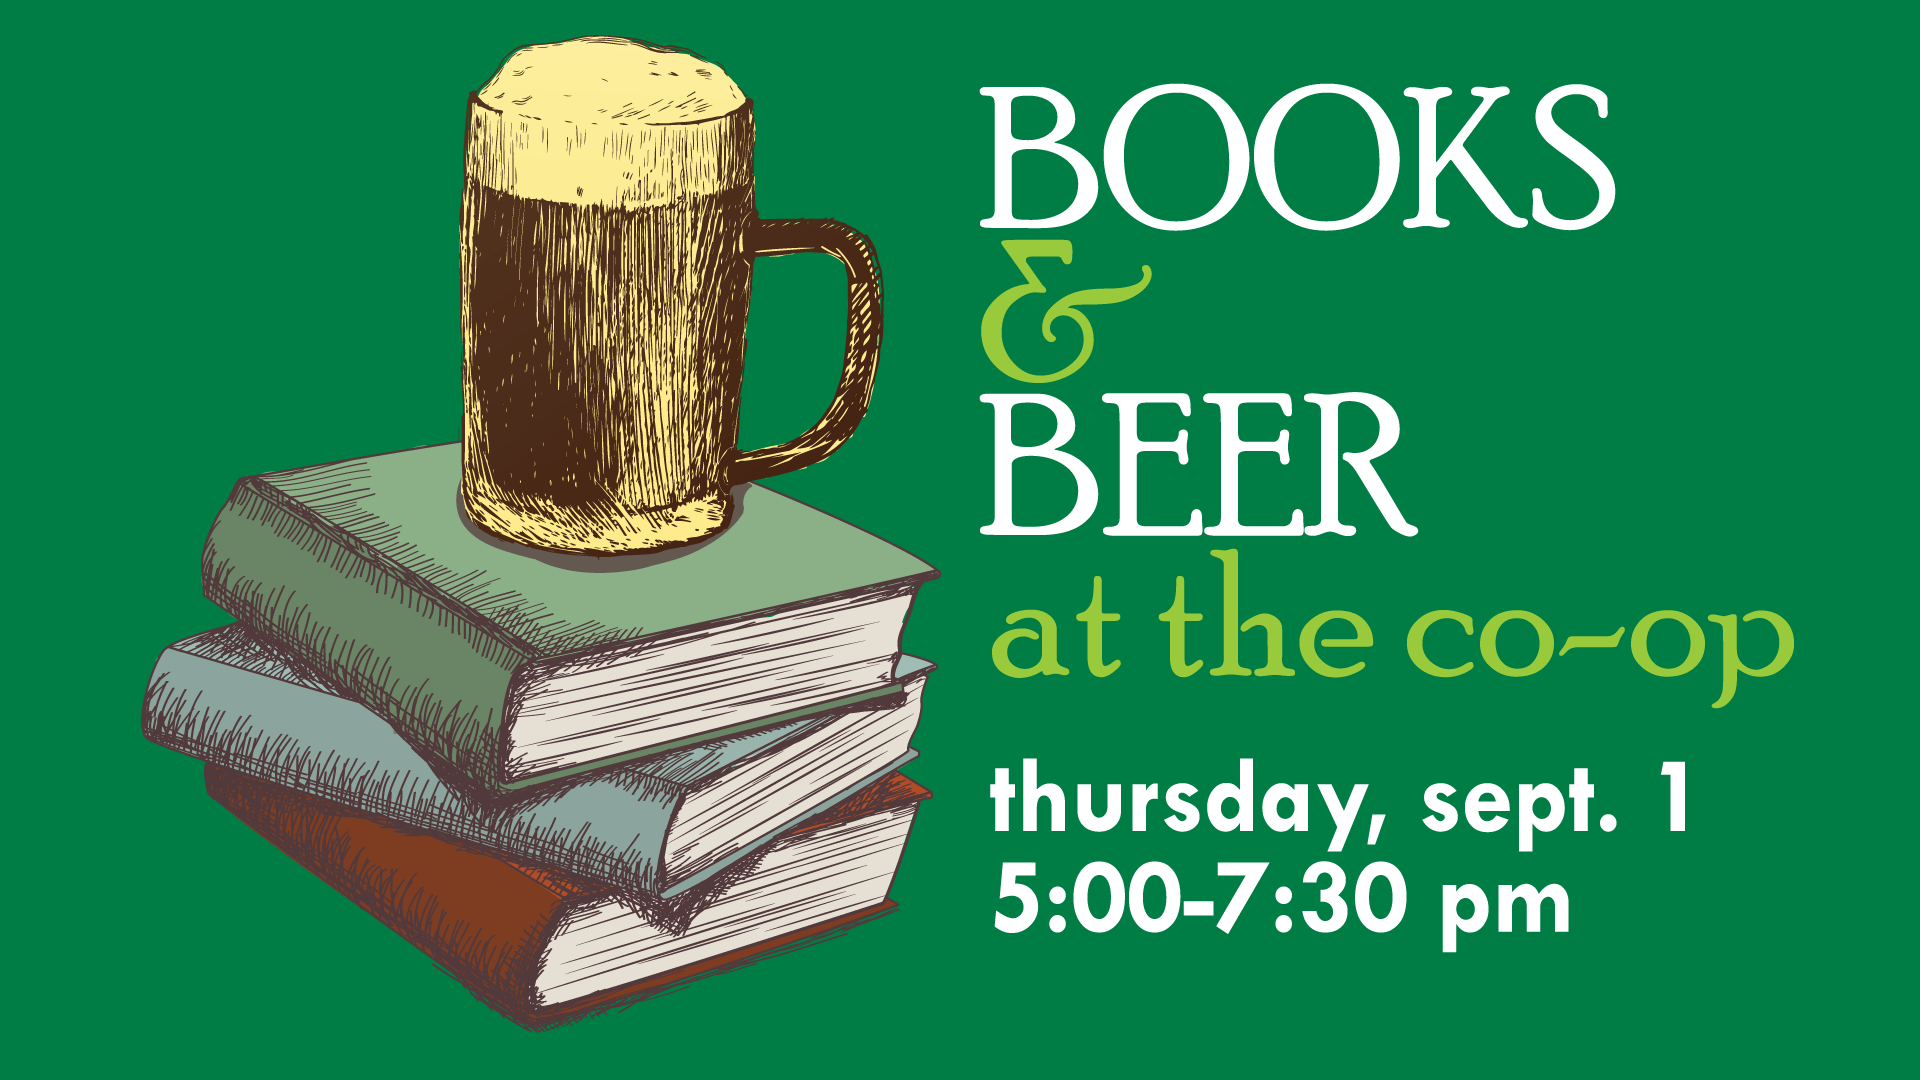 3 Reasons You Should Come to Books & Beer at the Co-op on 9/1